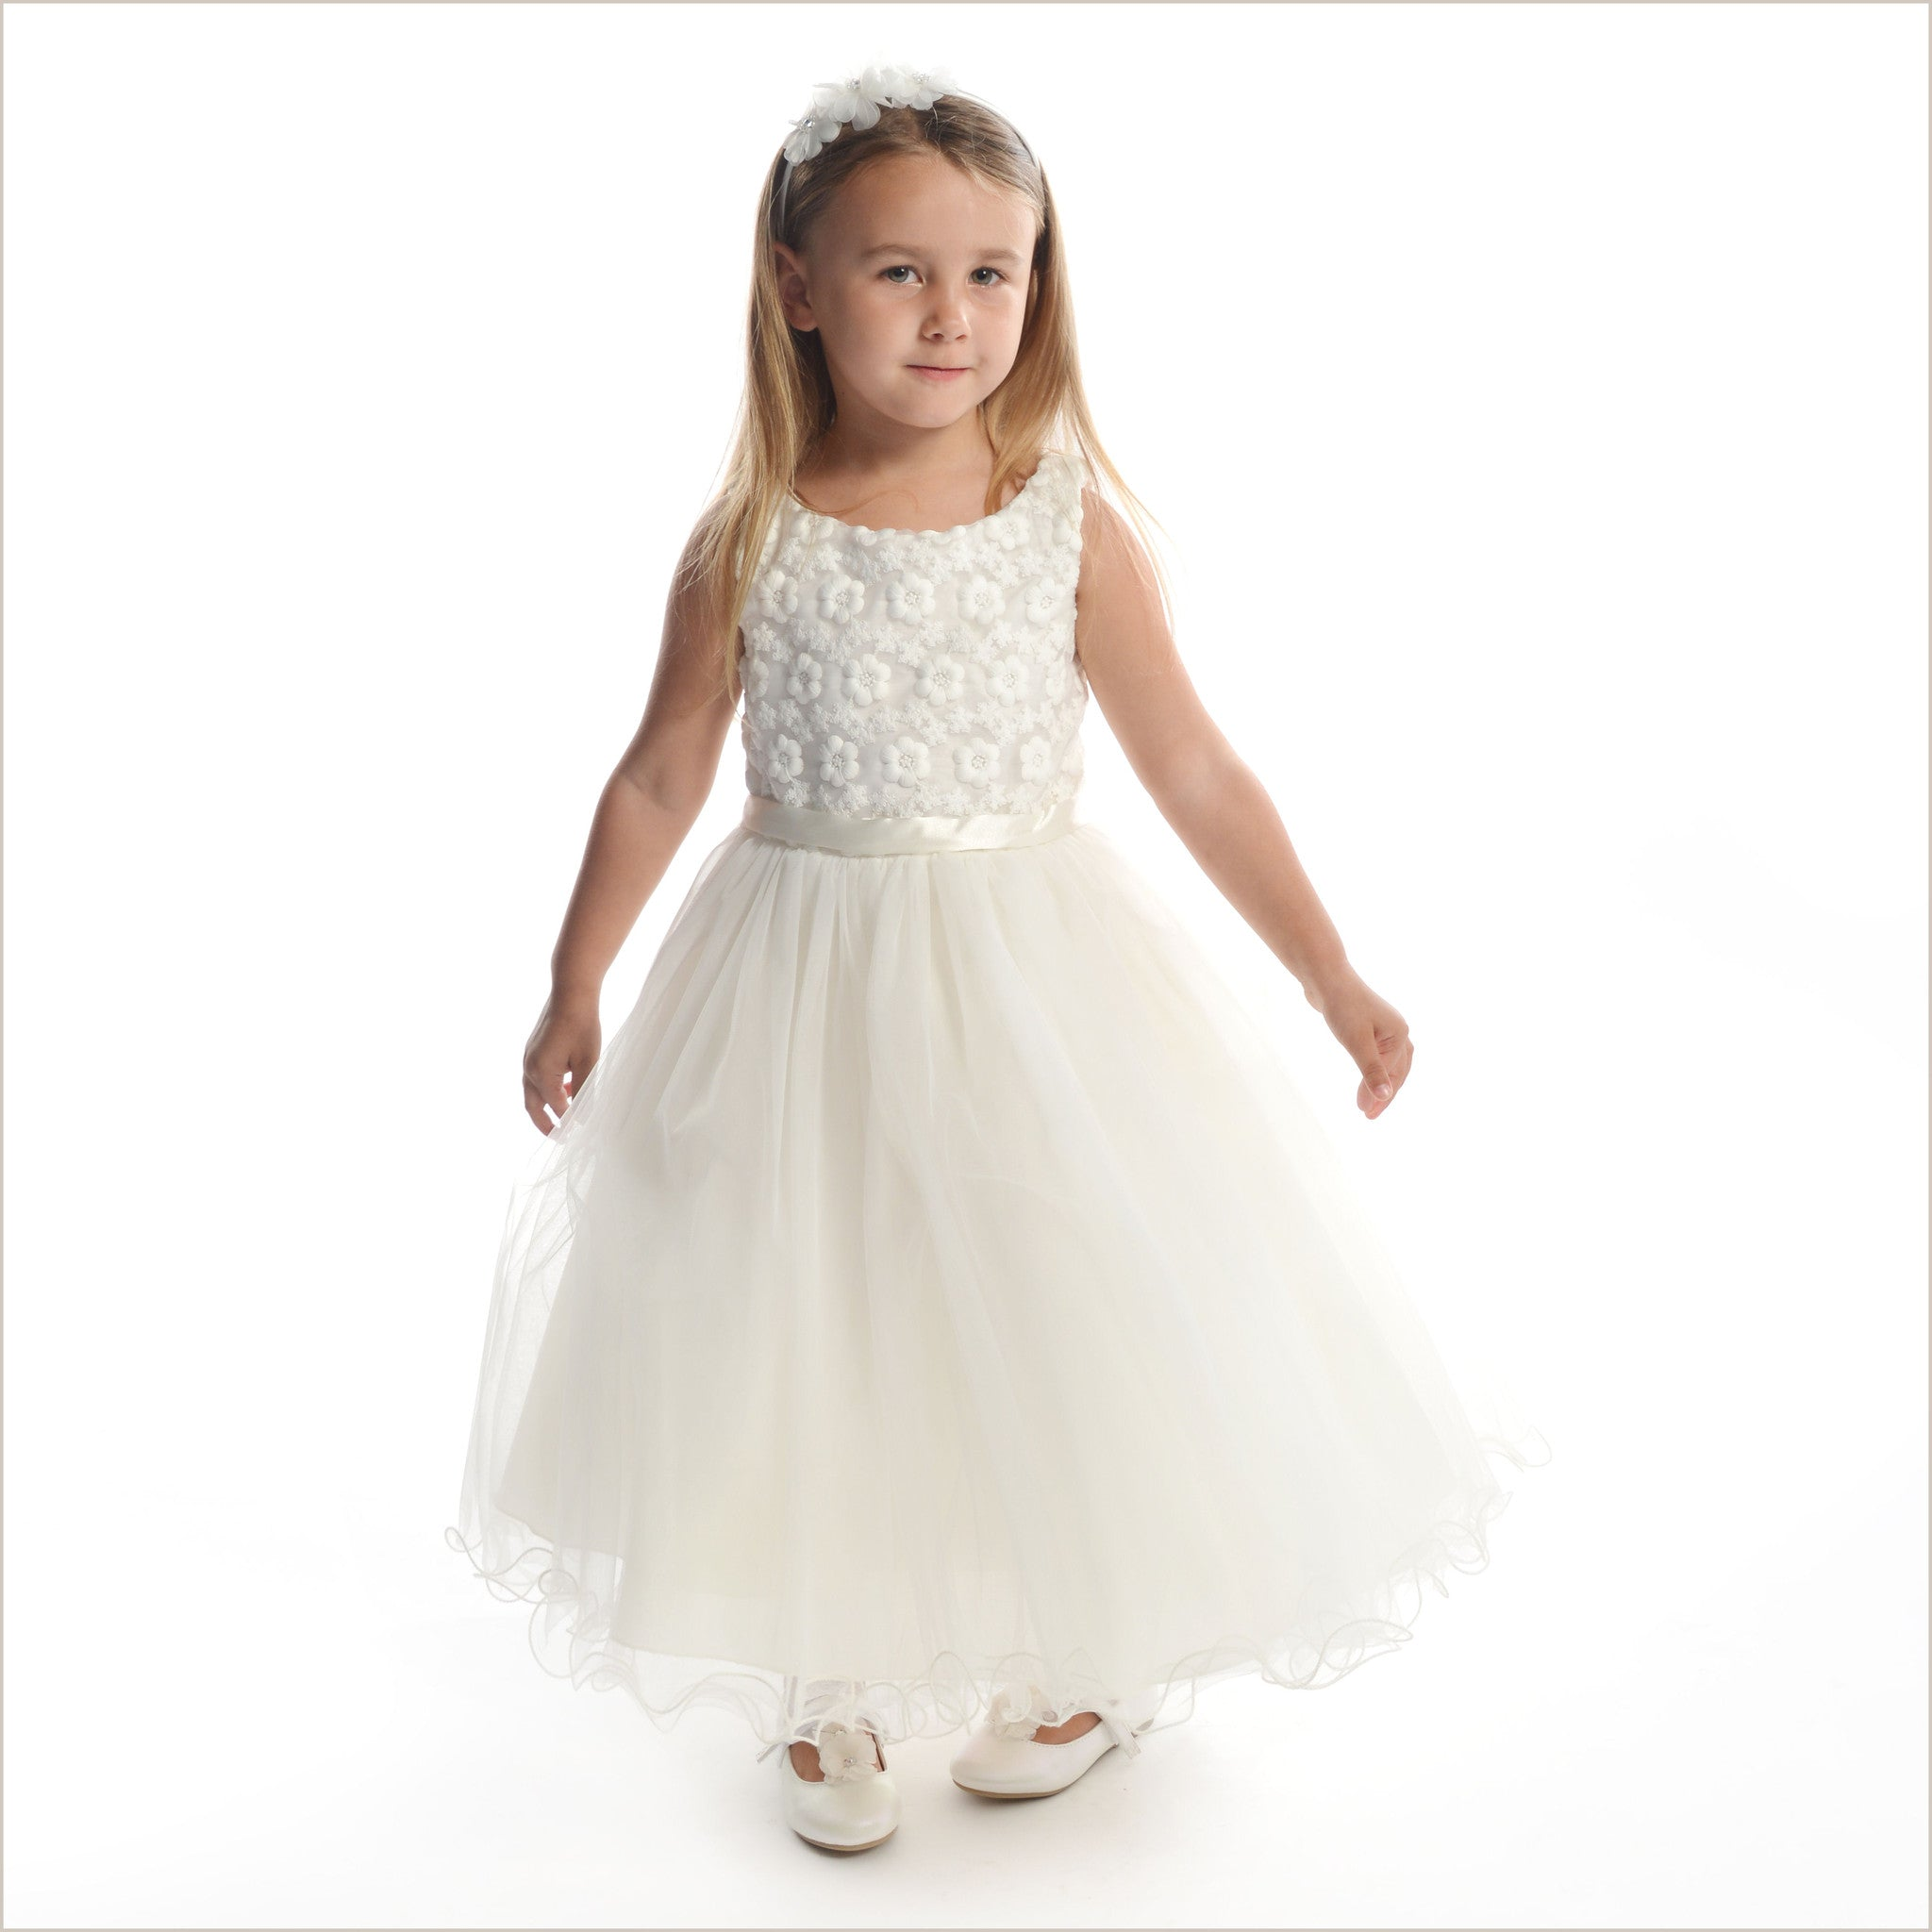 6e0cab1e1b7 Ivory Flower Girl Dress Daisy with Floral Bodice for Child Bridesmaids